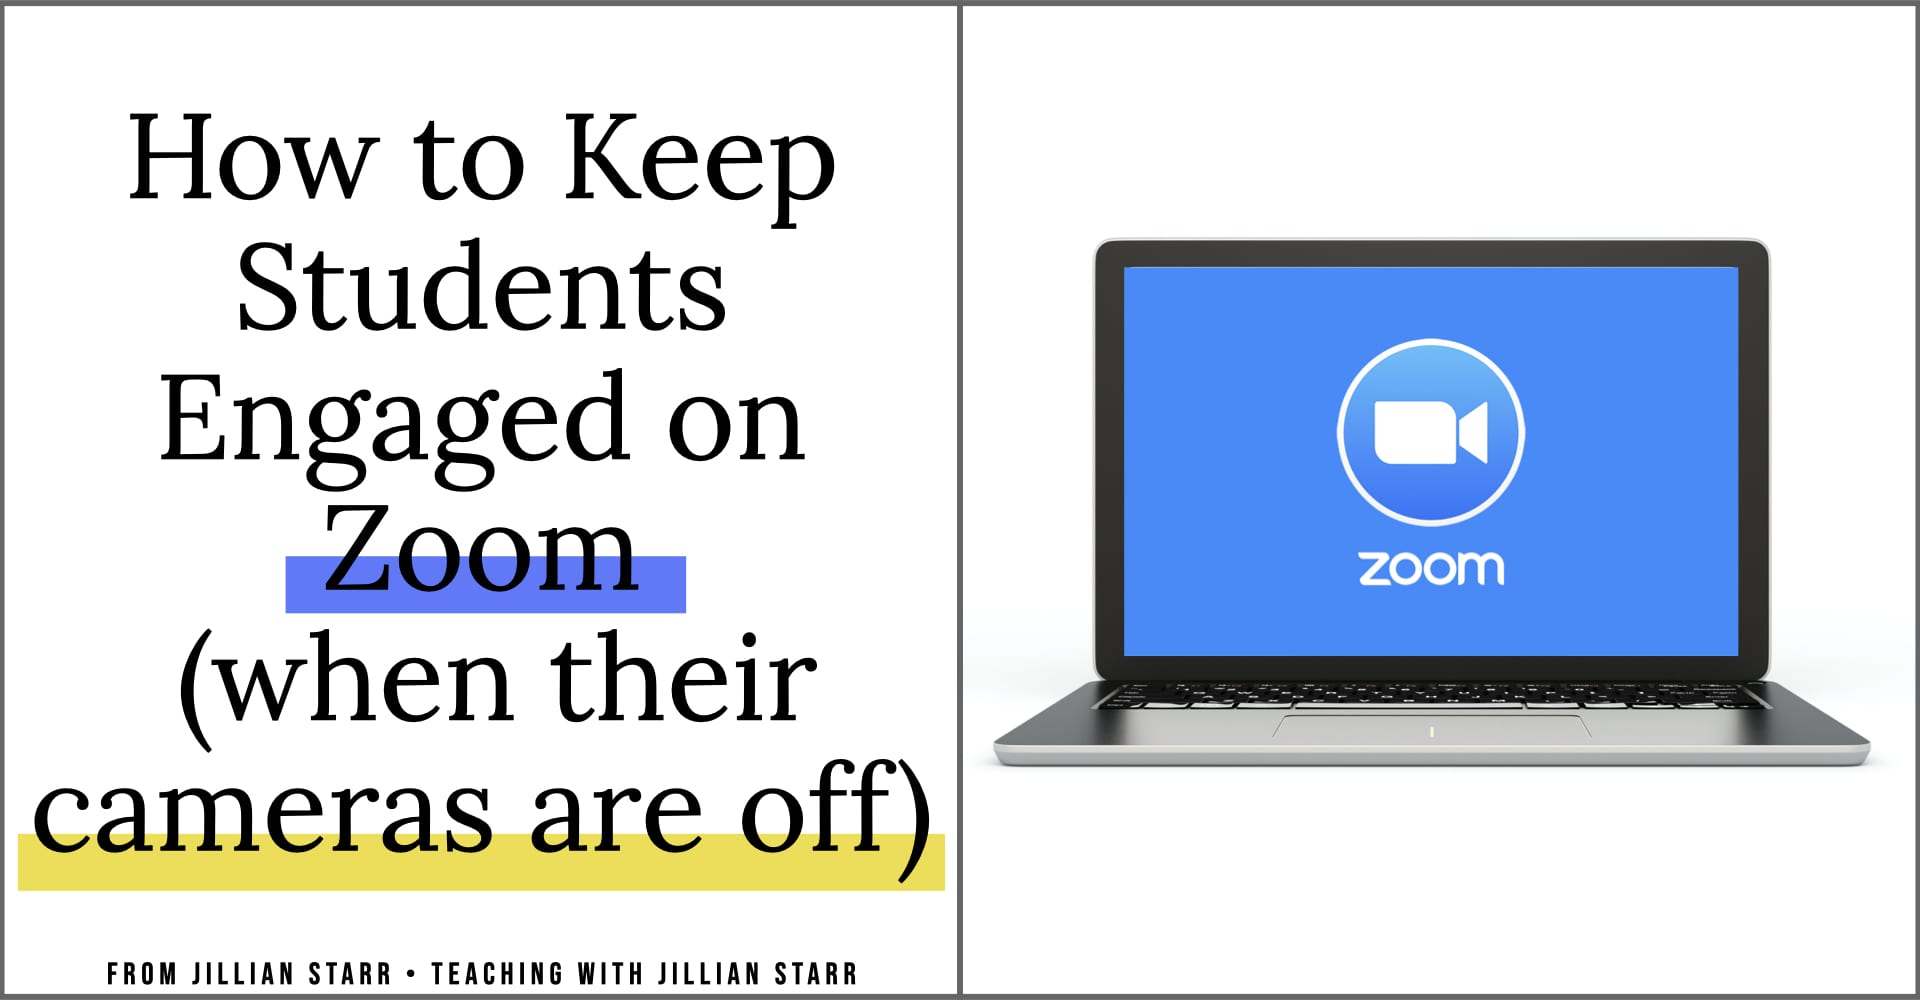 Student engagement can be difficult to navigate through a screen during a Zoom lesson. Let's talk about strategies to keep students engaged during your zoom lessons, even when the cameras are off.